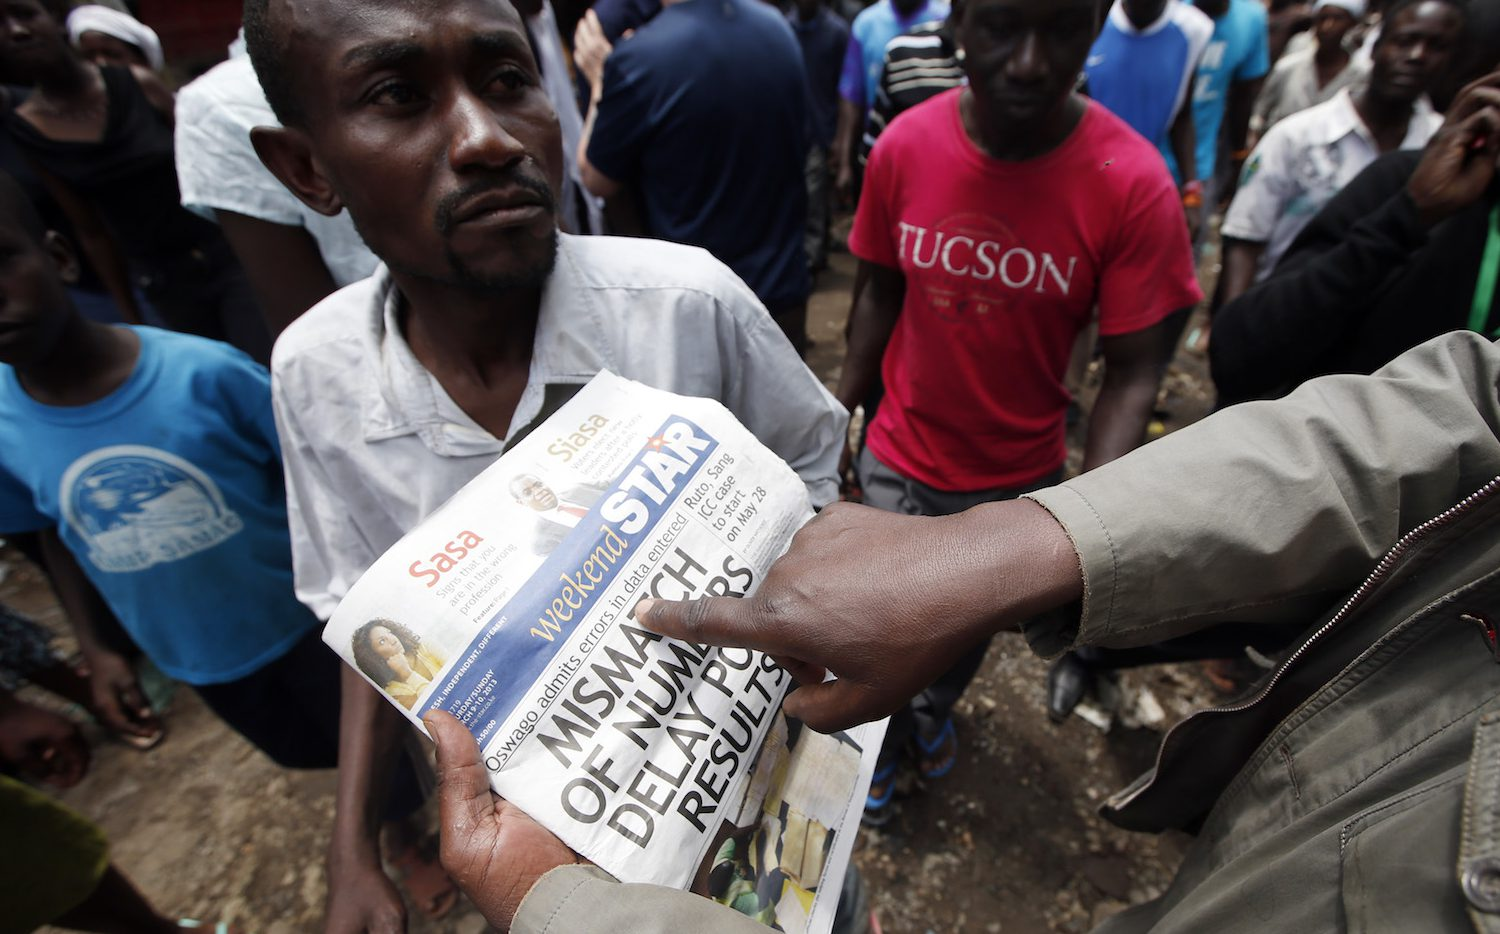 Supporters of Kenyan Prime Minister Raila Odinga look at a newspaper in the Mathare slum in the Kenyan capital of Nairobi March 9, 2013. Kenyan Prime Minister Raila Odinga will not concede this week's election and will launch a legal challenge if rival Uhuru Kenyatta is officially declared president, an adviser said on Saturday.